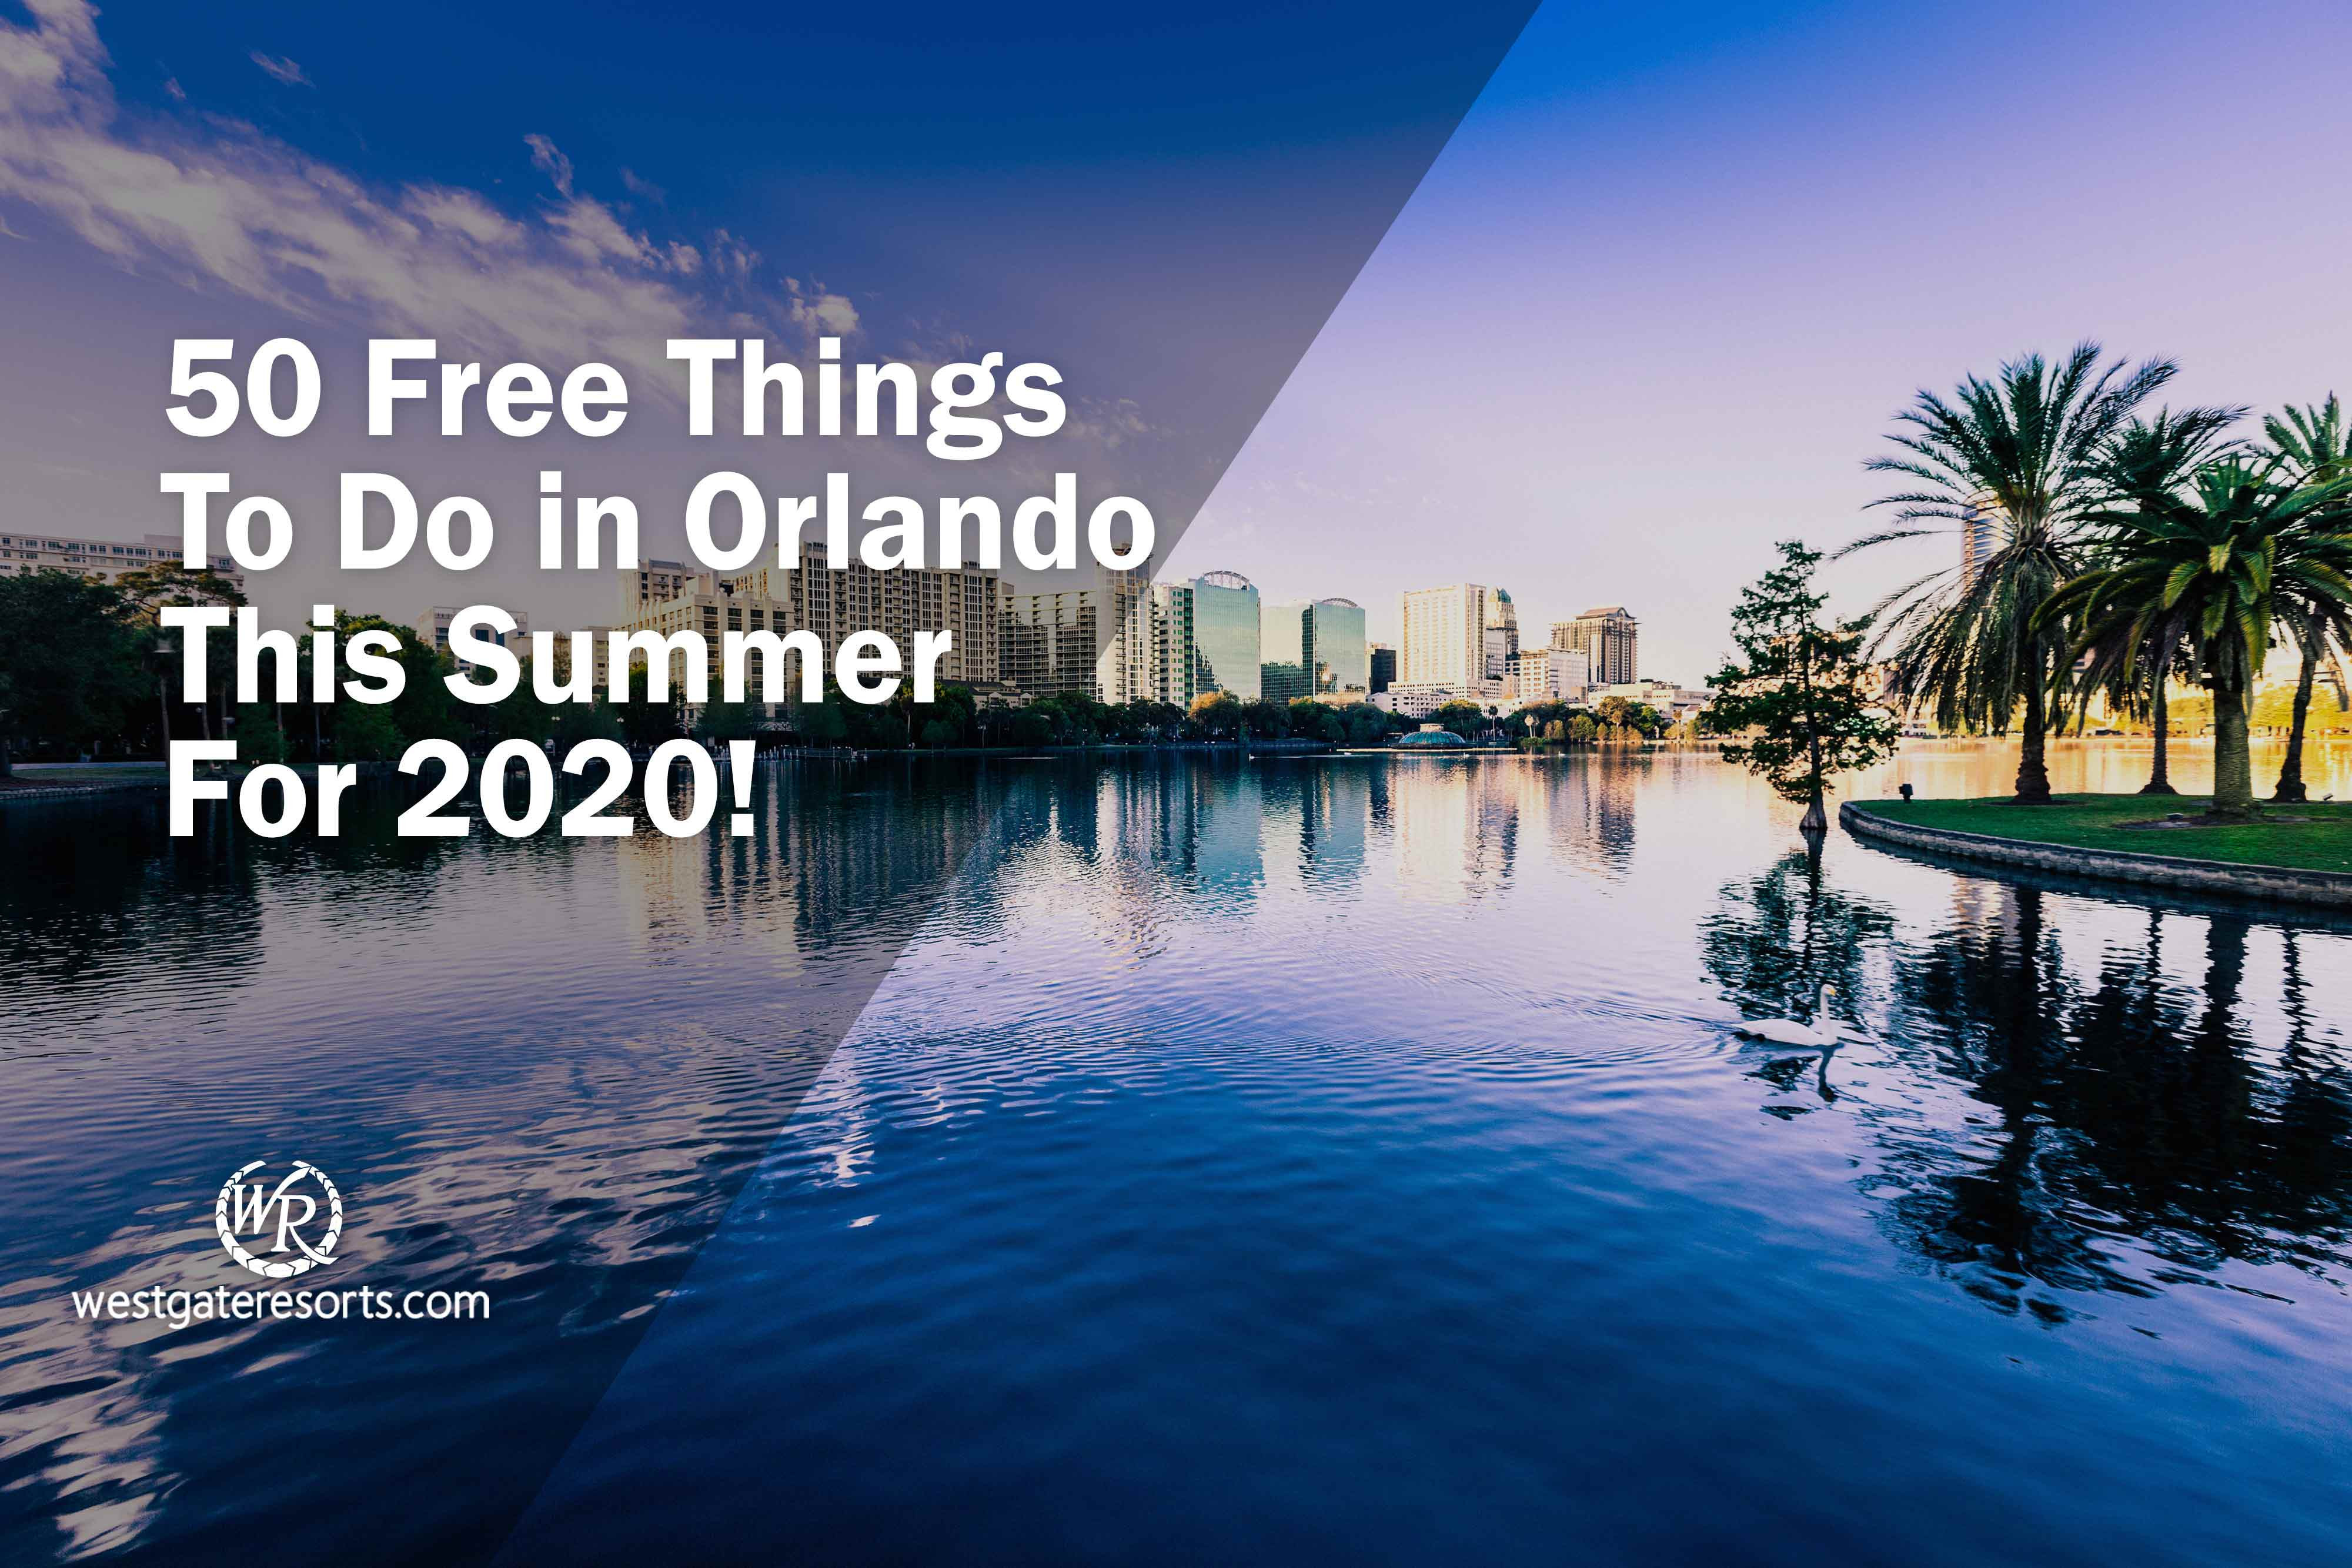 50 Free Things To Do in Orlando This Summer For 2020! | Free And Inexpensive Things To Do In Orlando